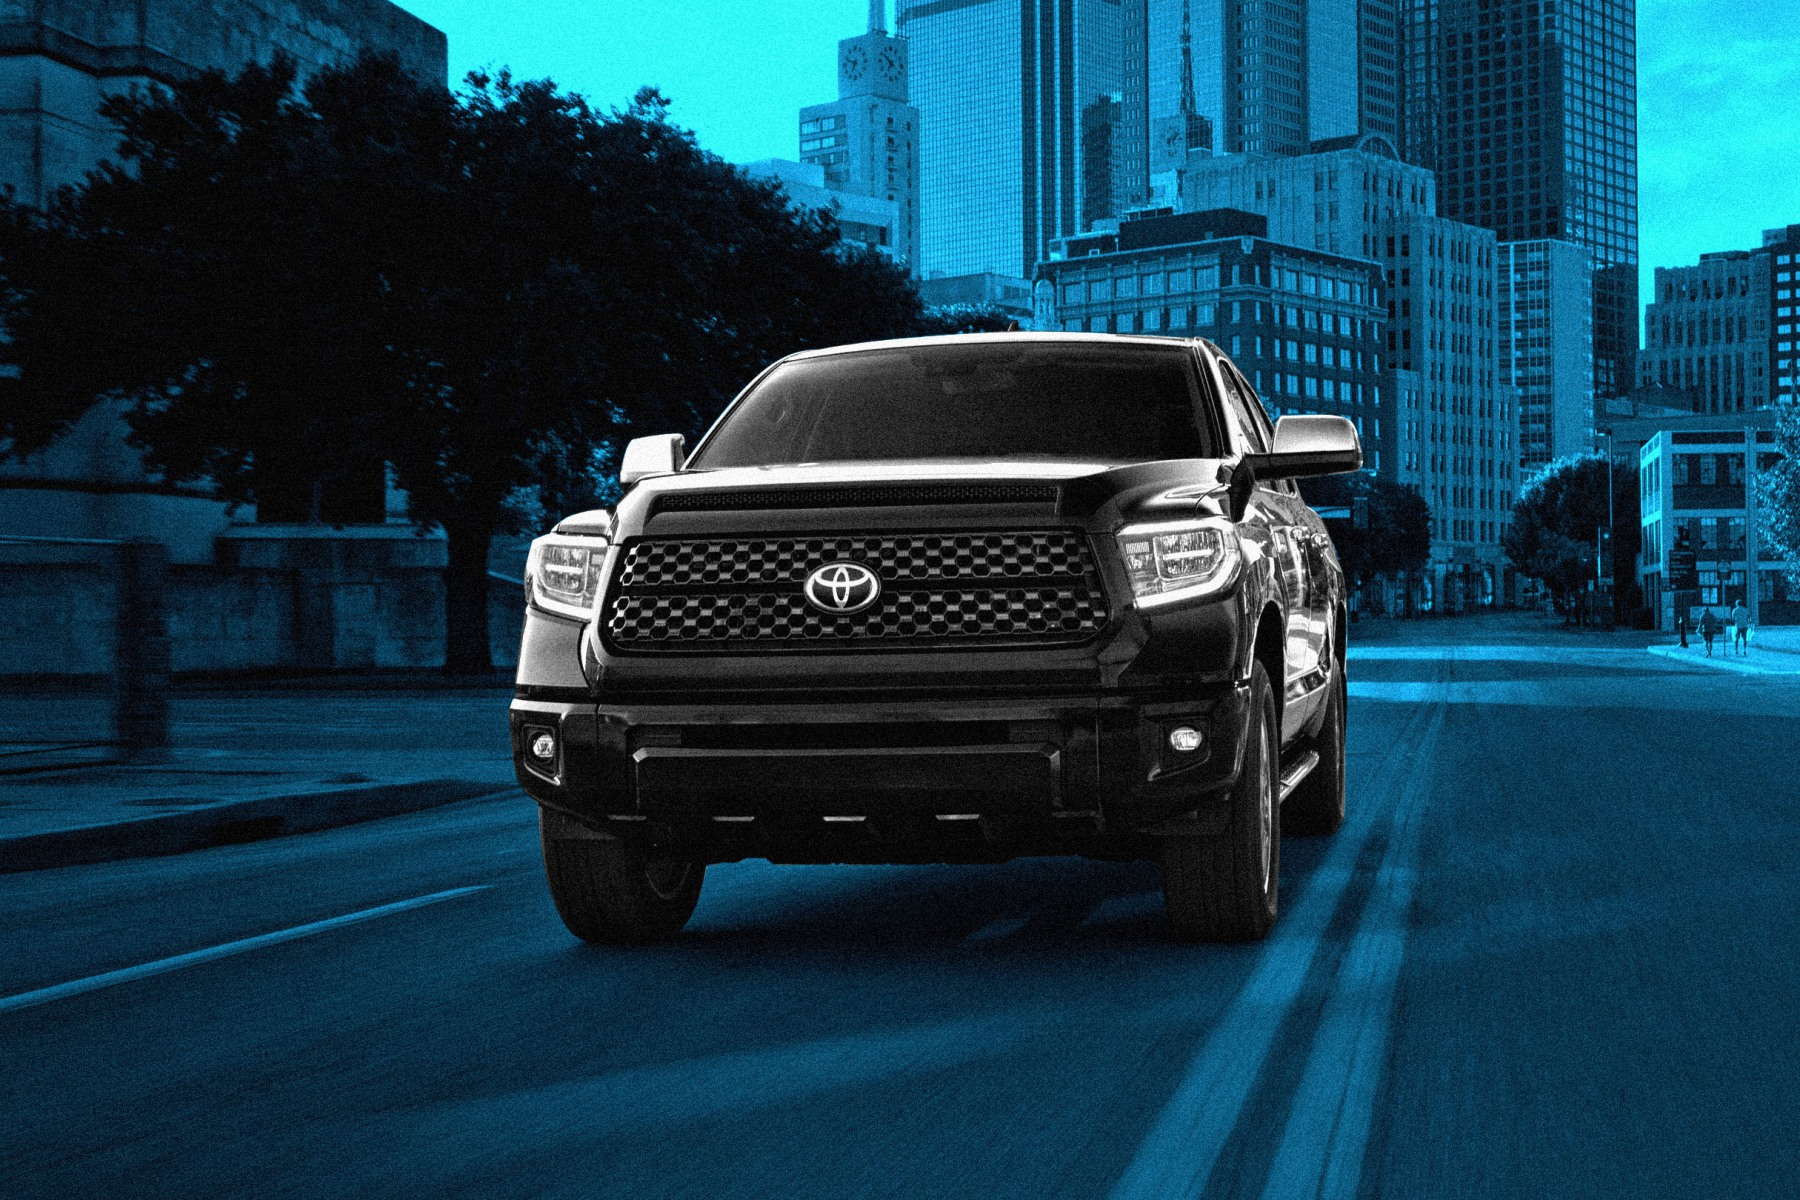 Does the Toyota Tundra work in the big city?